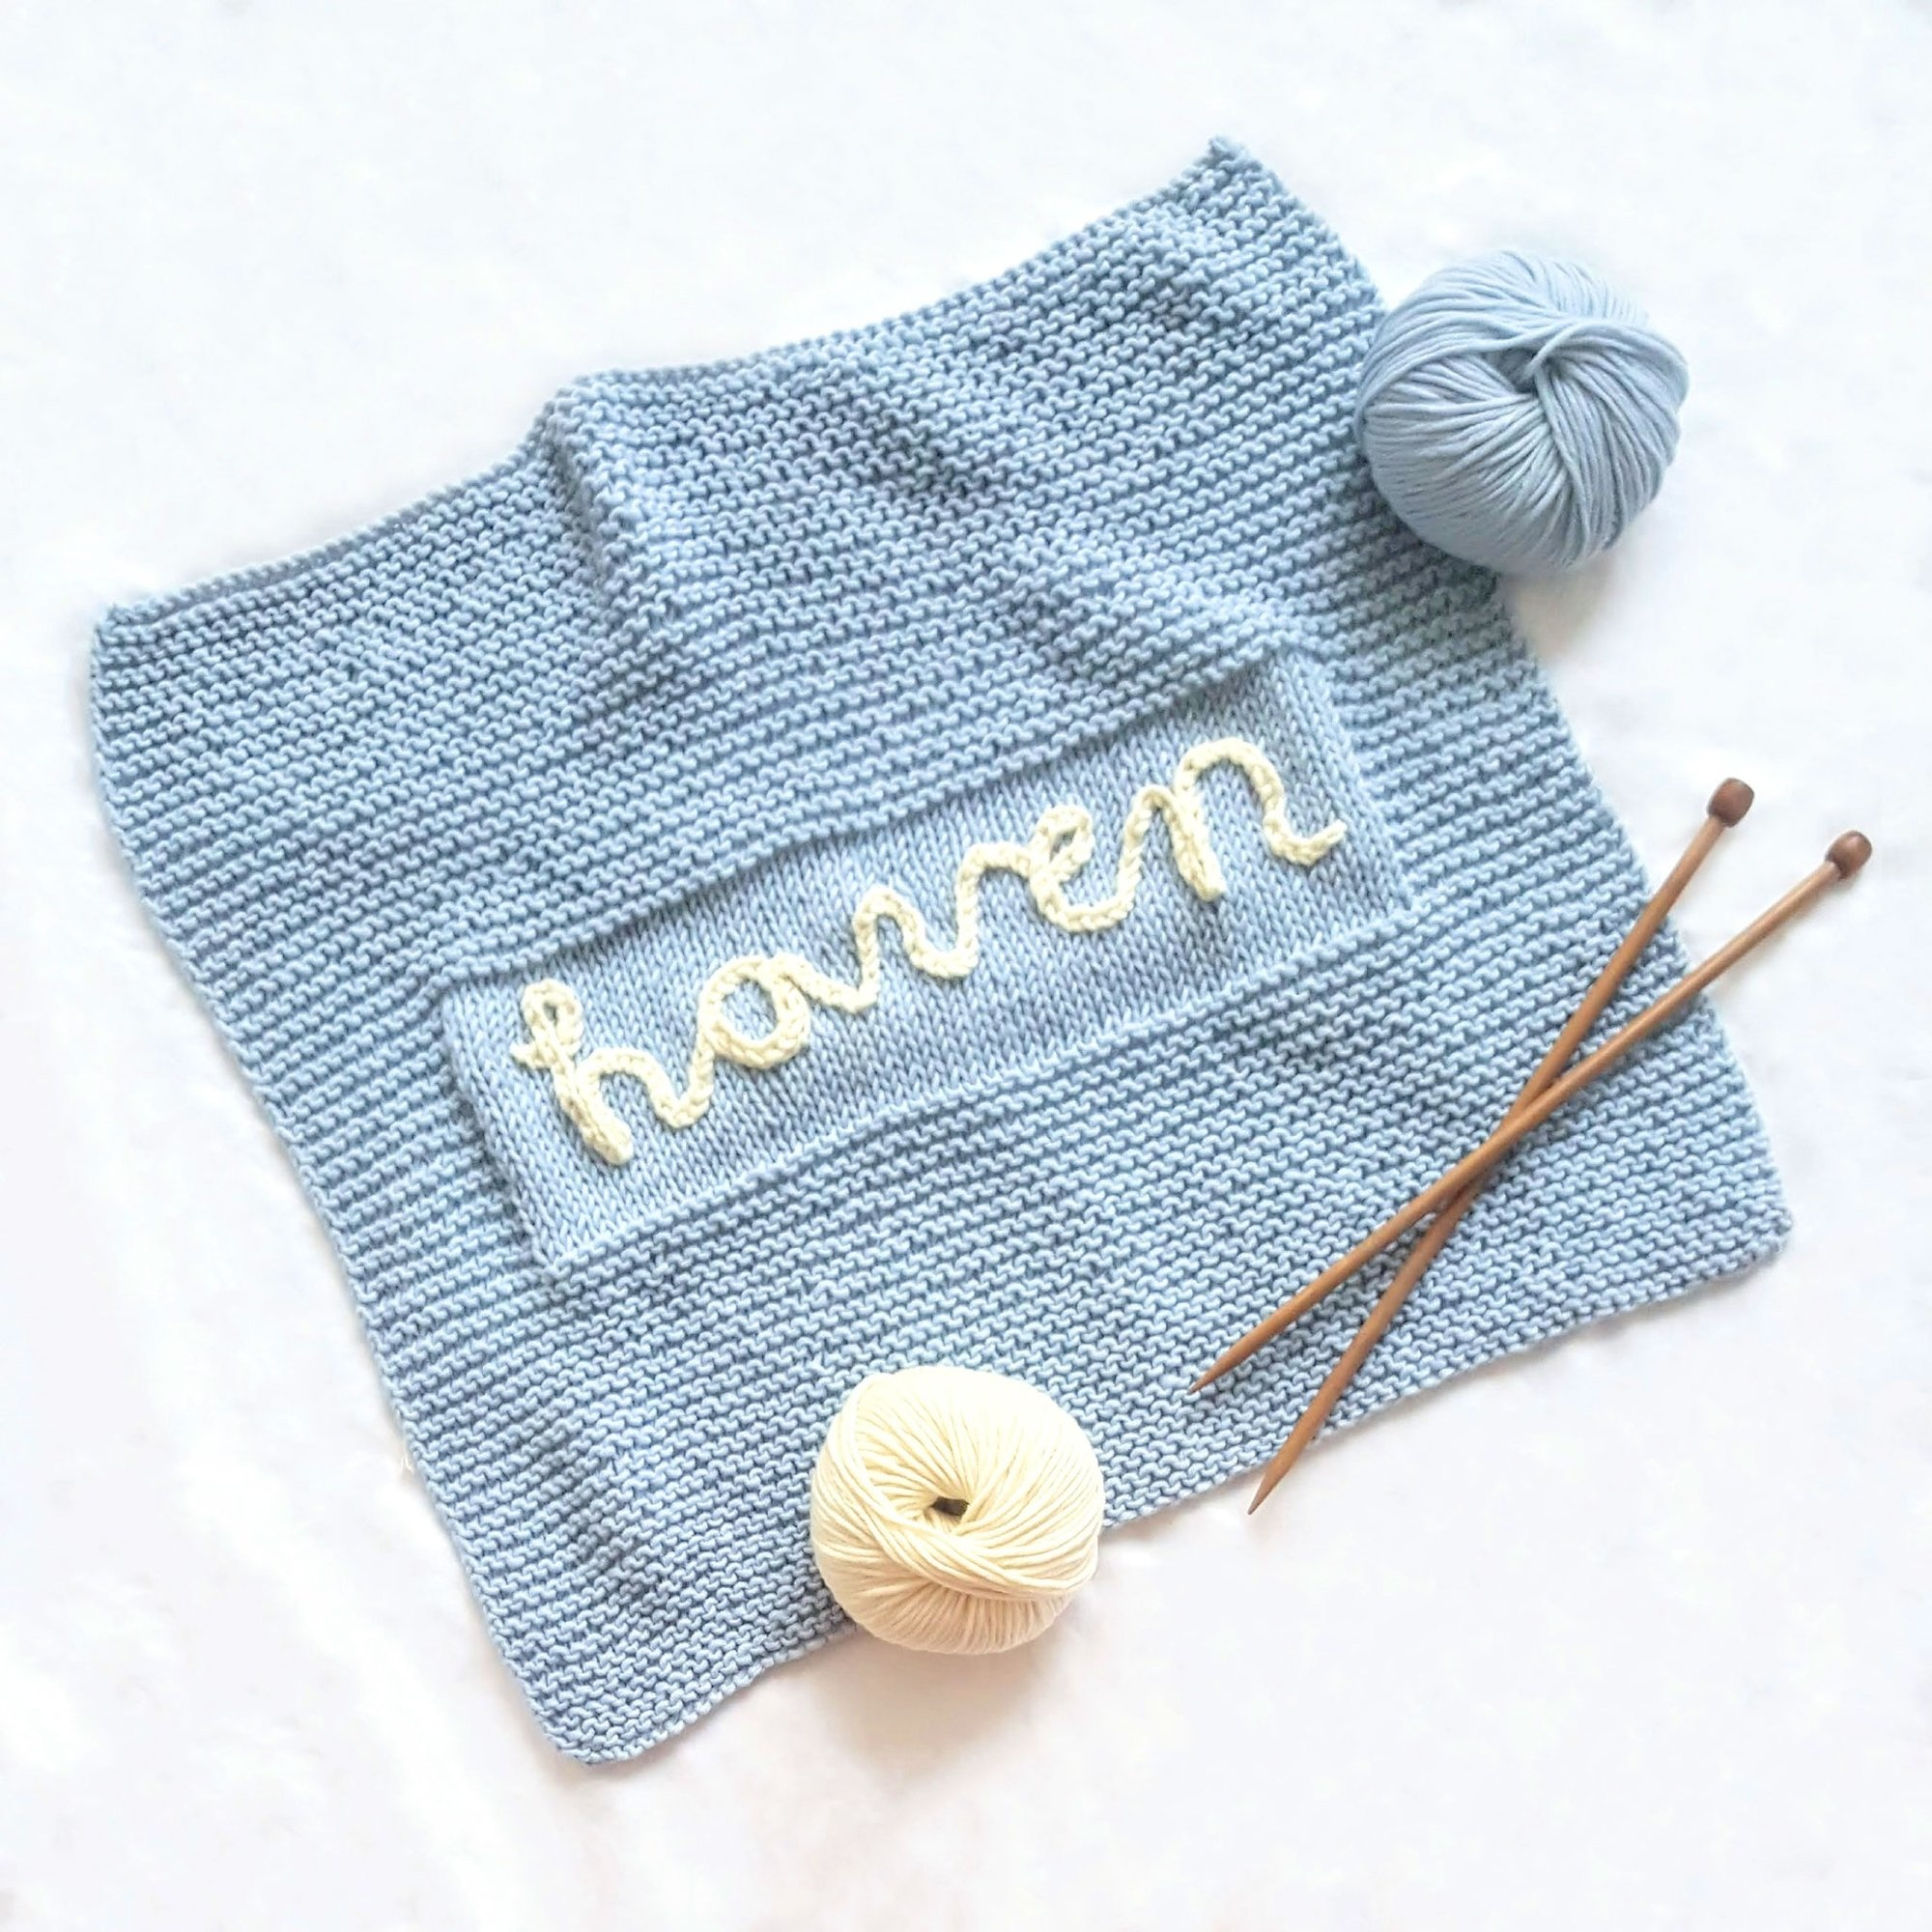 Stitch & Story Personalised Baby Blanket - Baby Blue